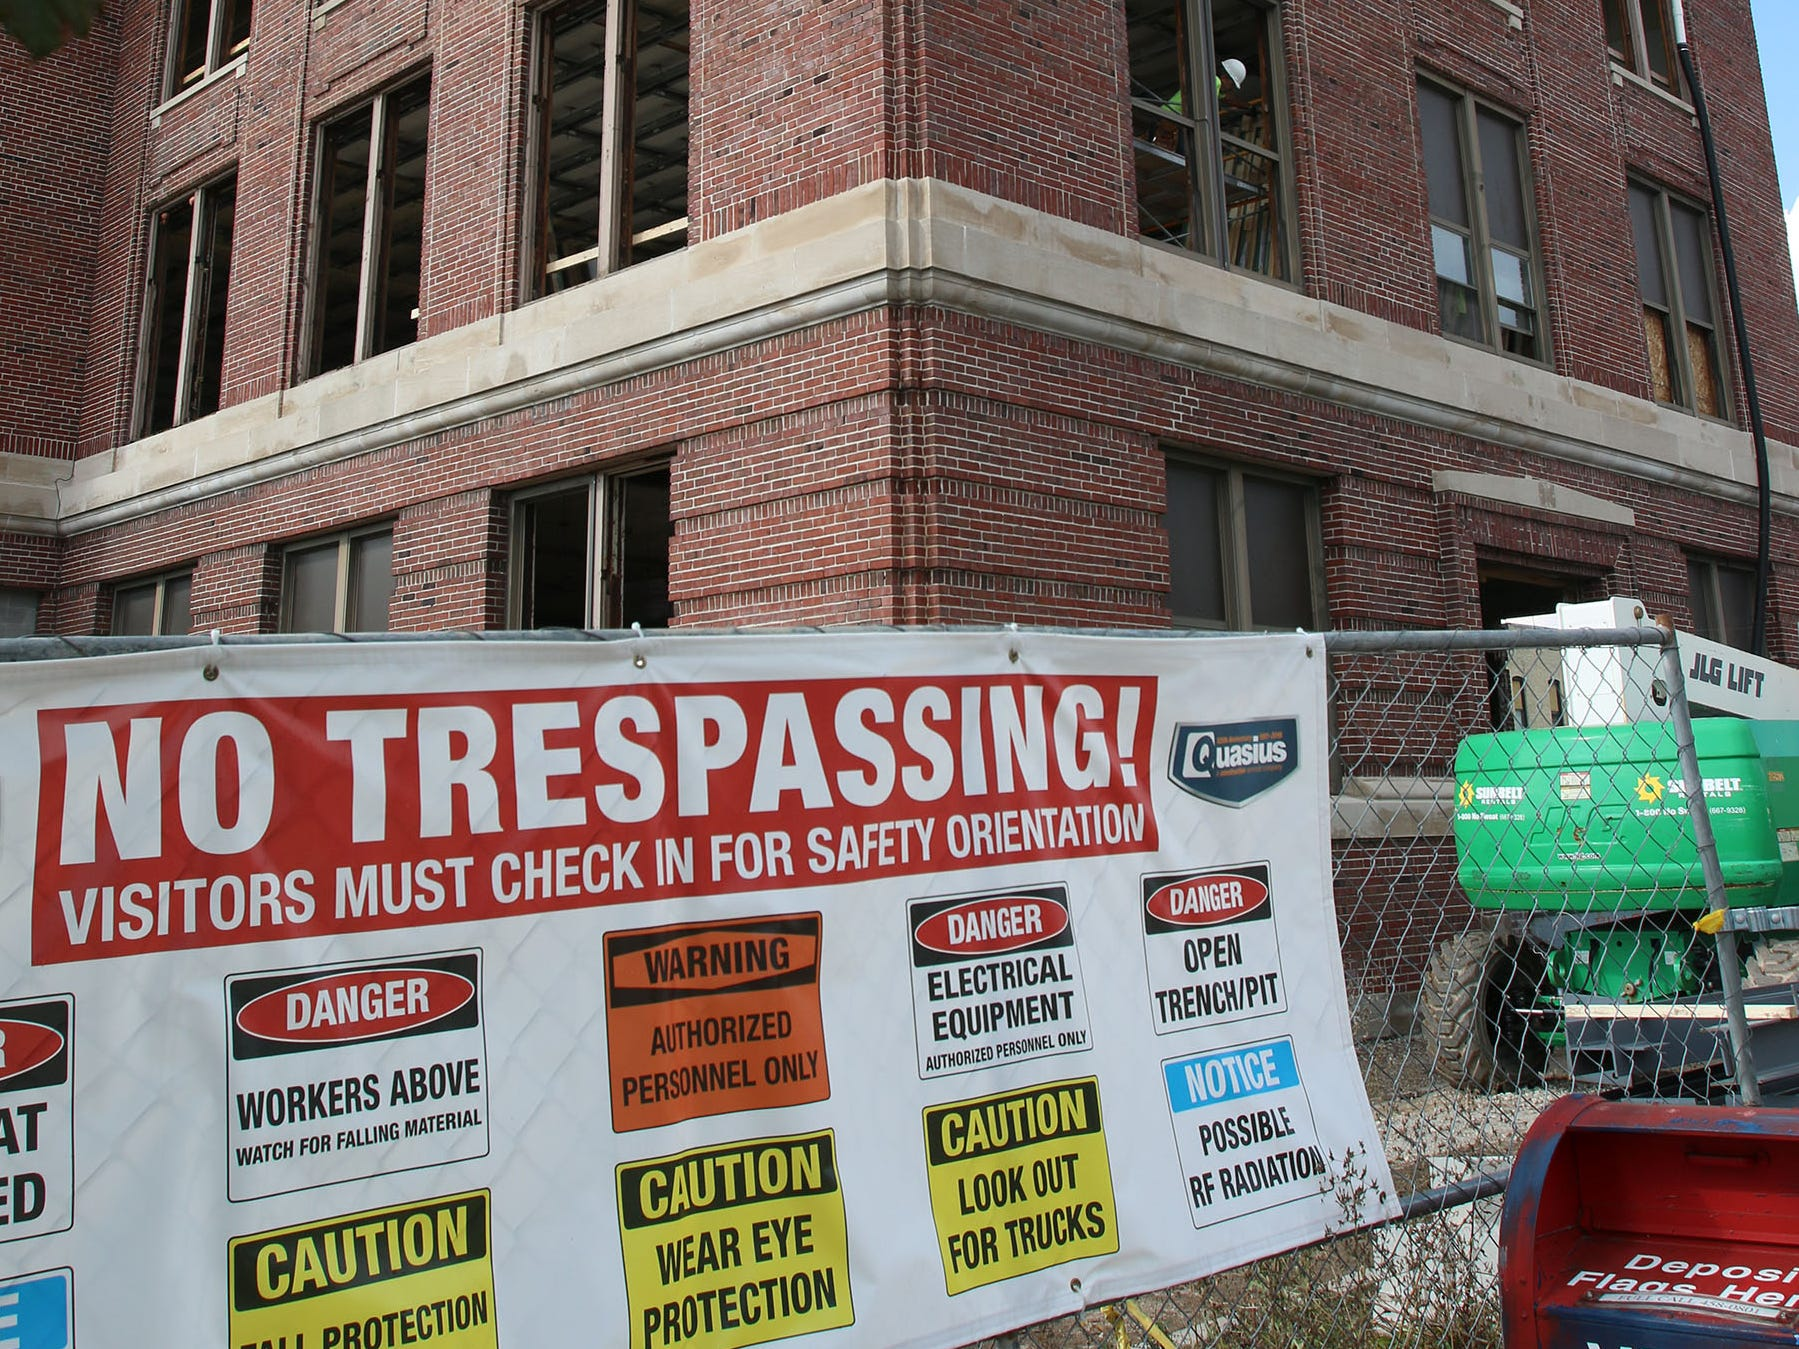 The southeast corner of Sheboygan City Hall features caution signs, Tuesday, October 9, 2018, in Sheboygan, Wis. The city is doing a multi-million dollar renovation of the structure.